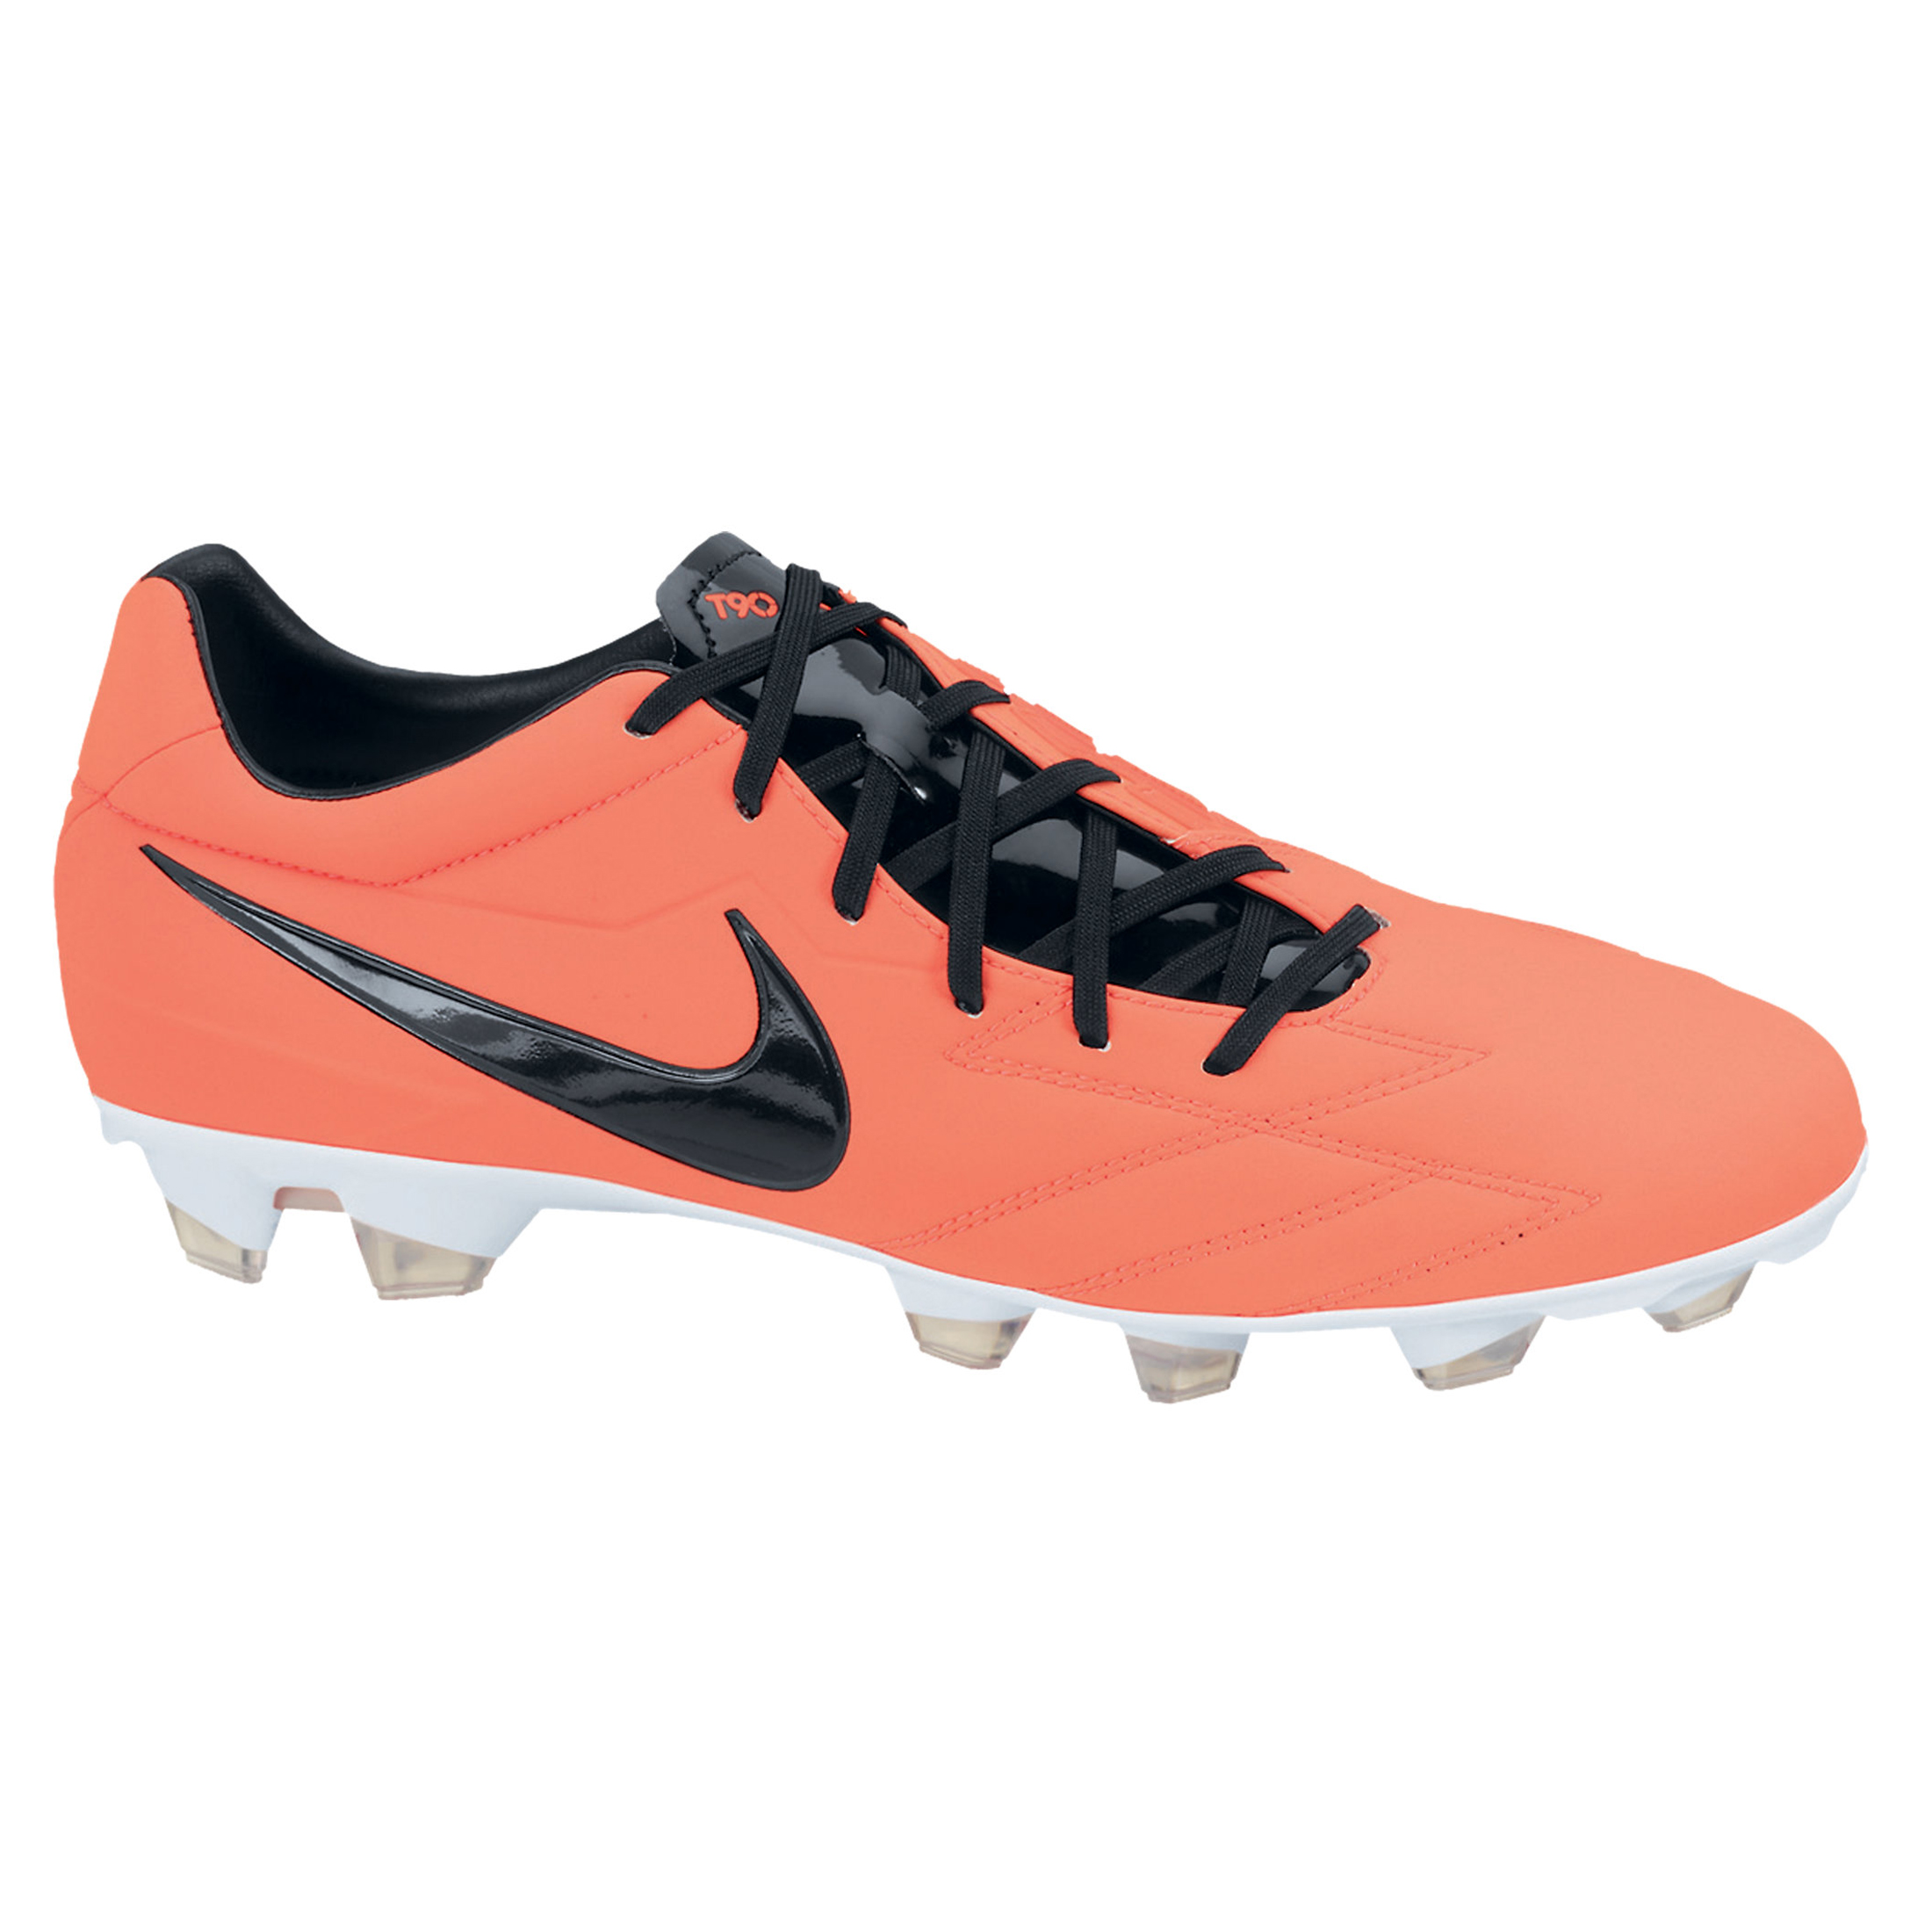 Nike Total90 Strike IV Firm Ground Football Boots - Bright Mango/Black/Total Crimson/White